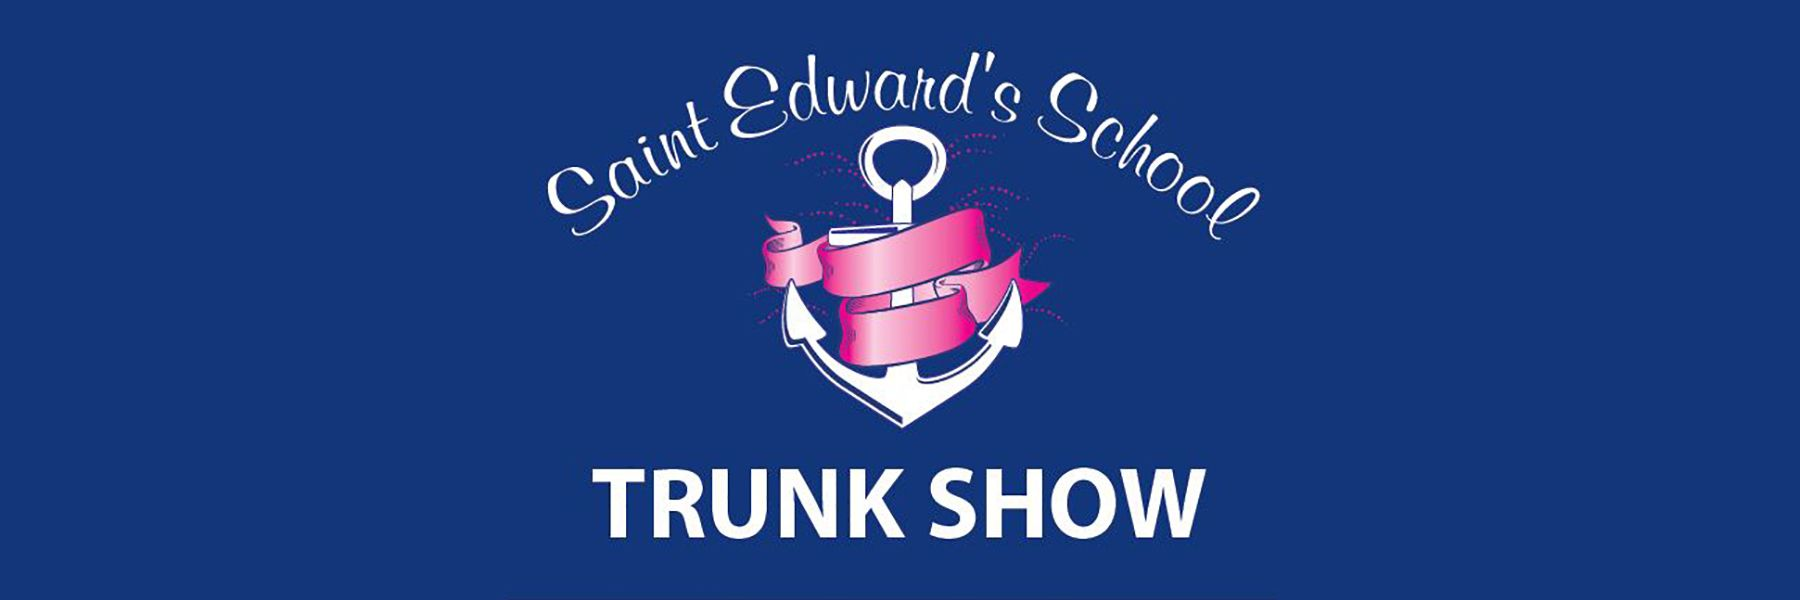 Trunk Show Logo 2018 form banner1